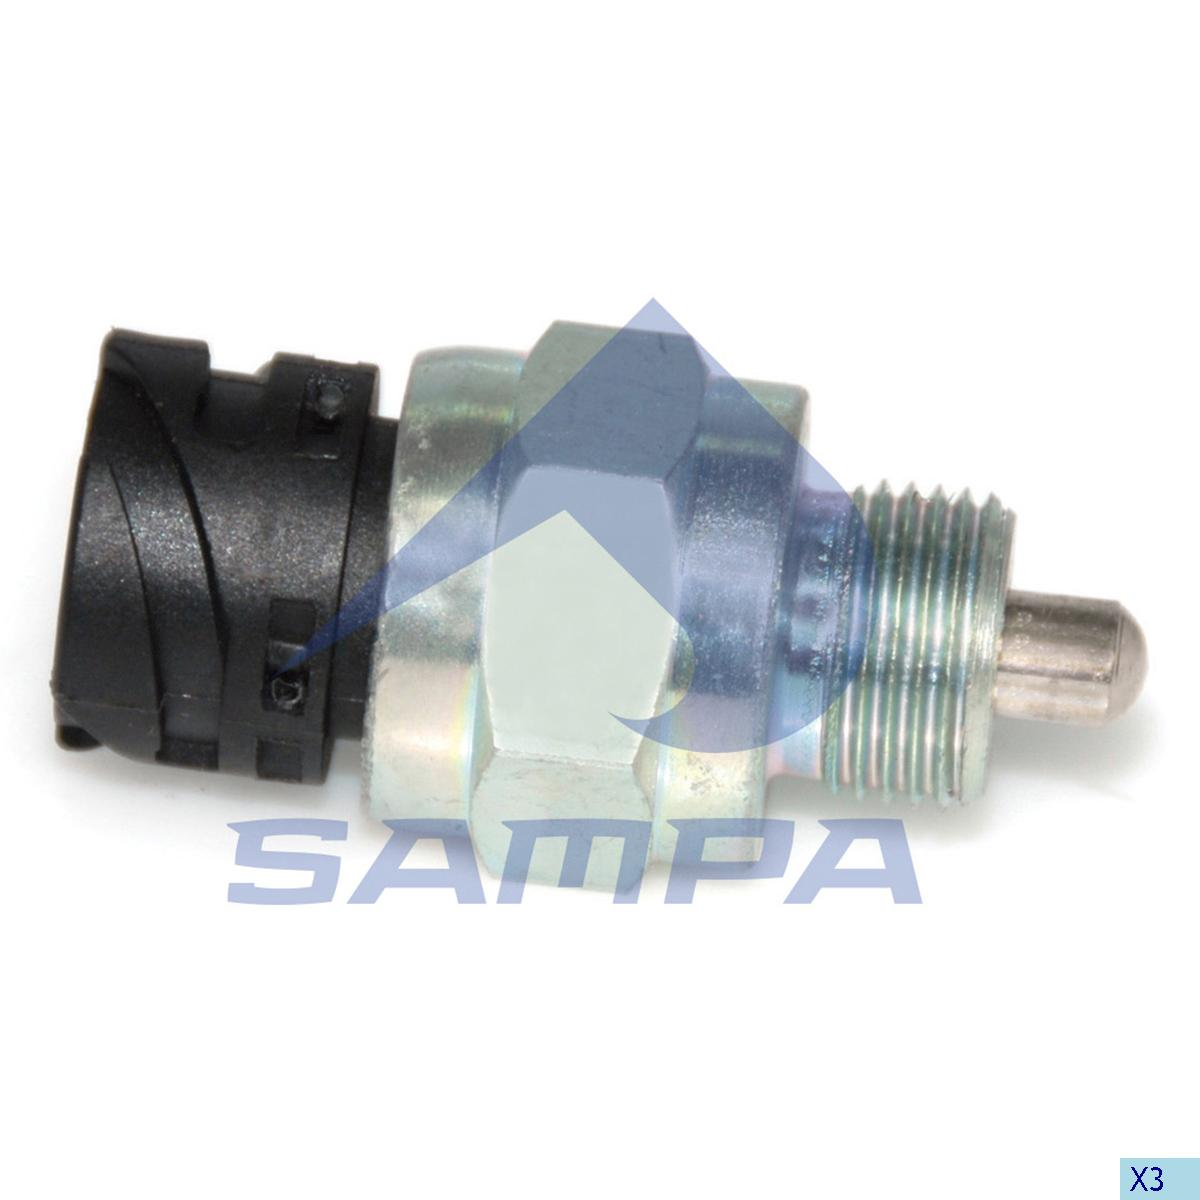 Sensor, Gear Selector Housing, Scania, Gear Box